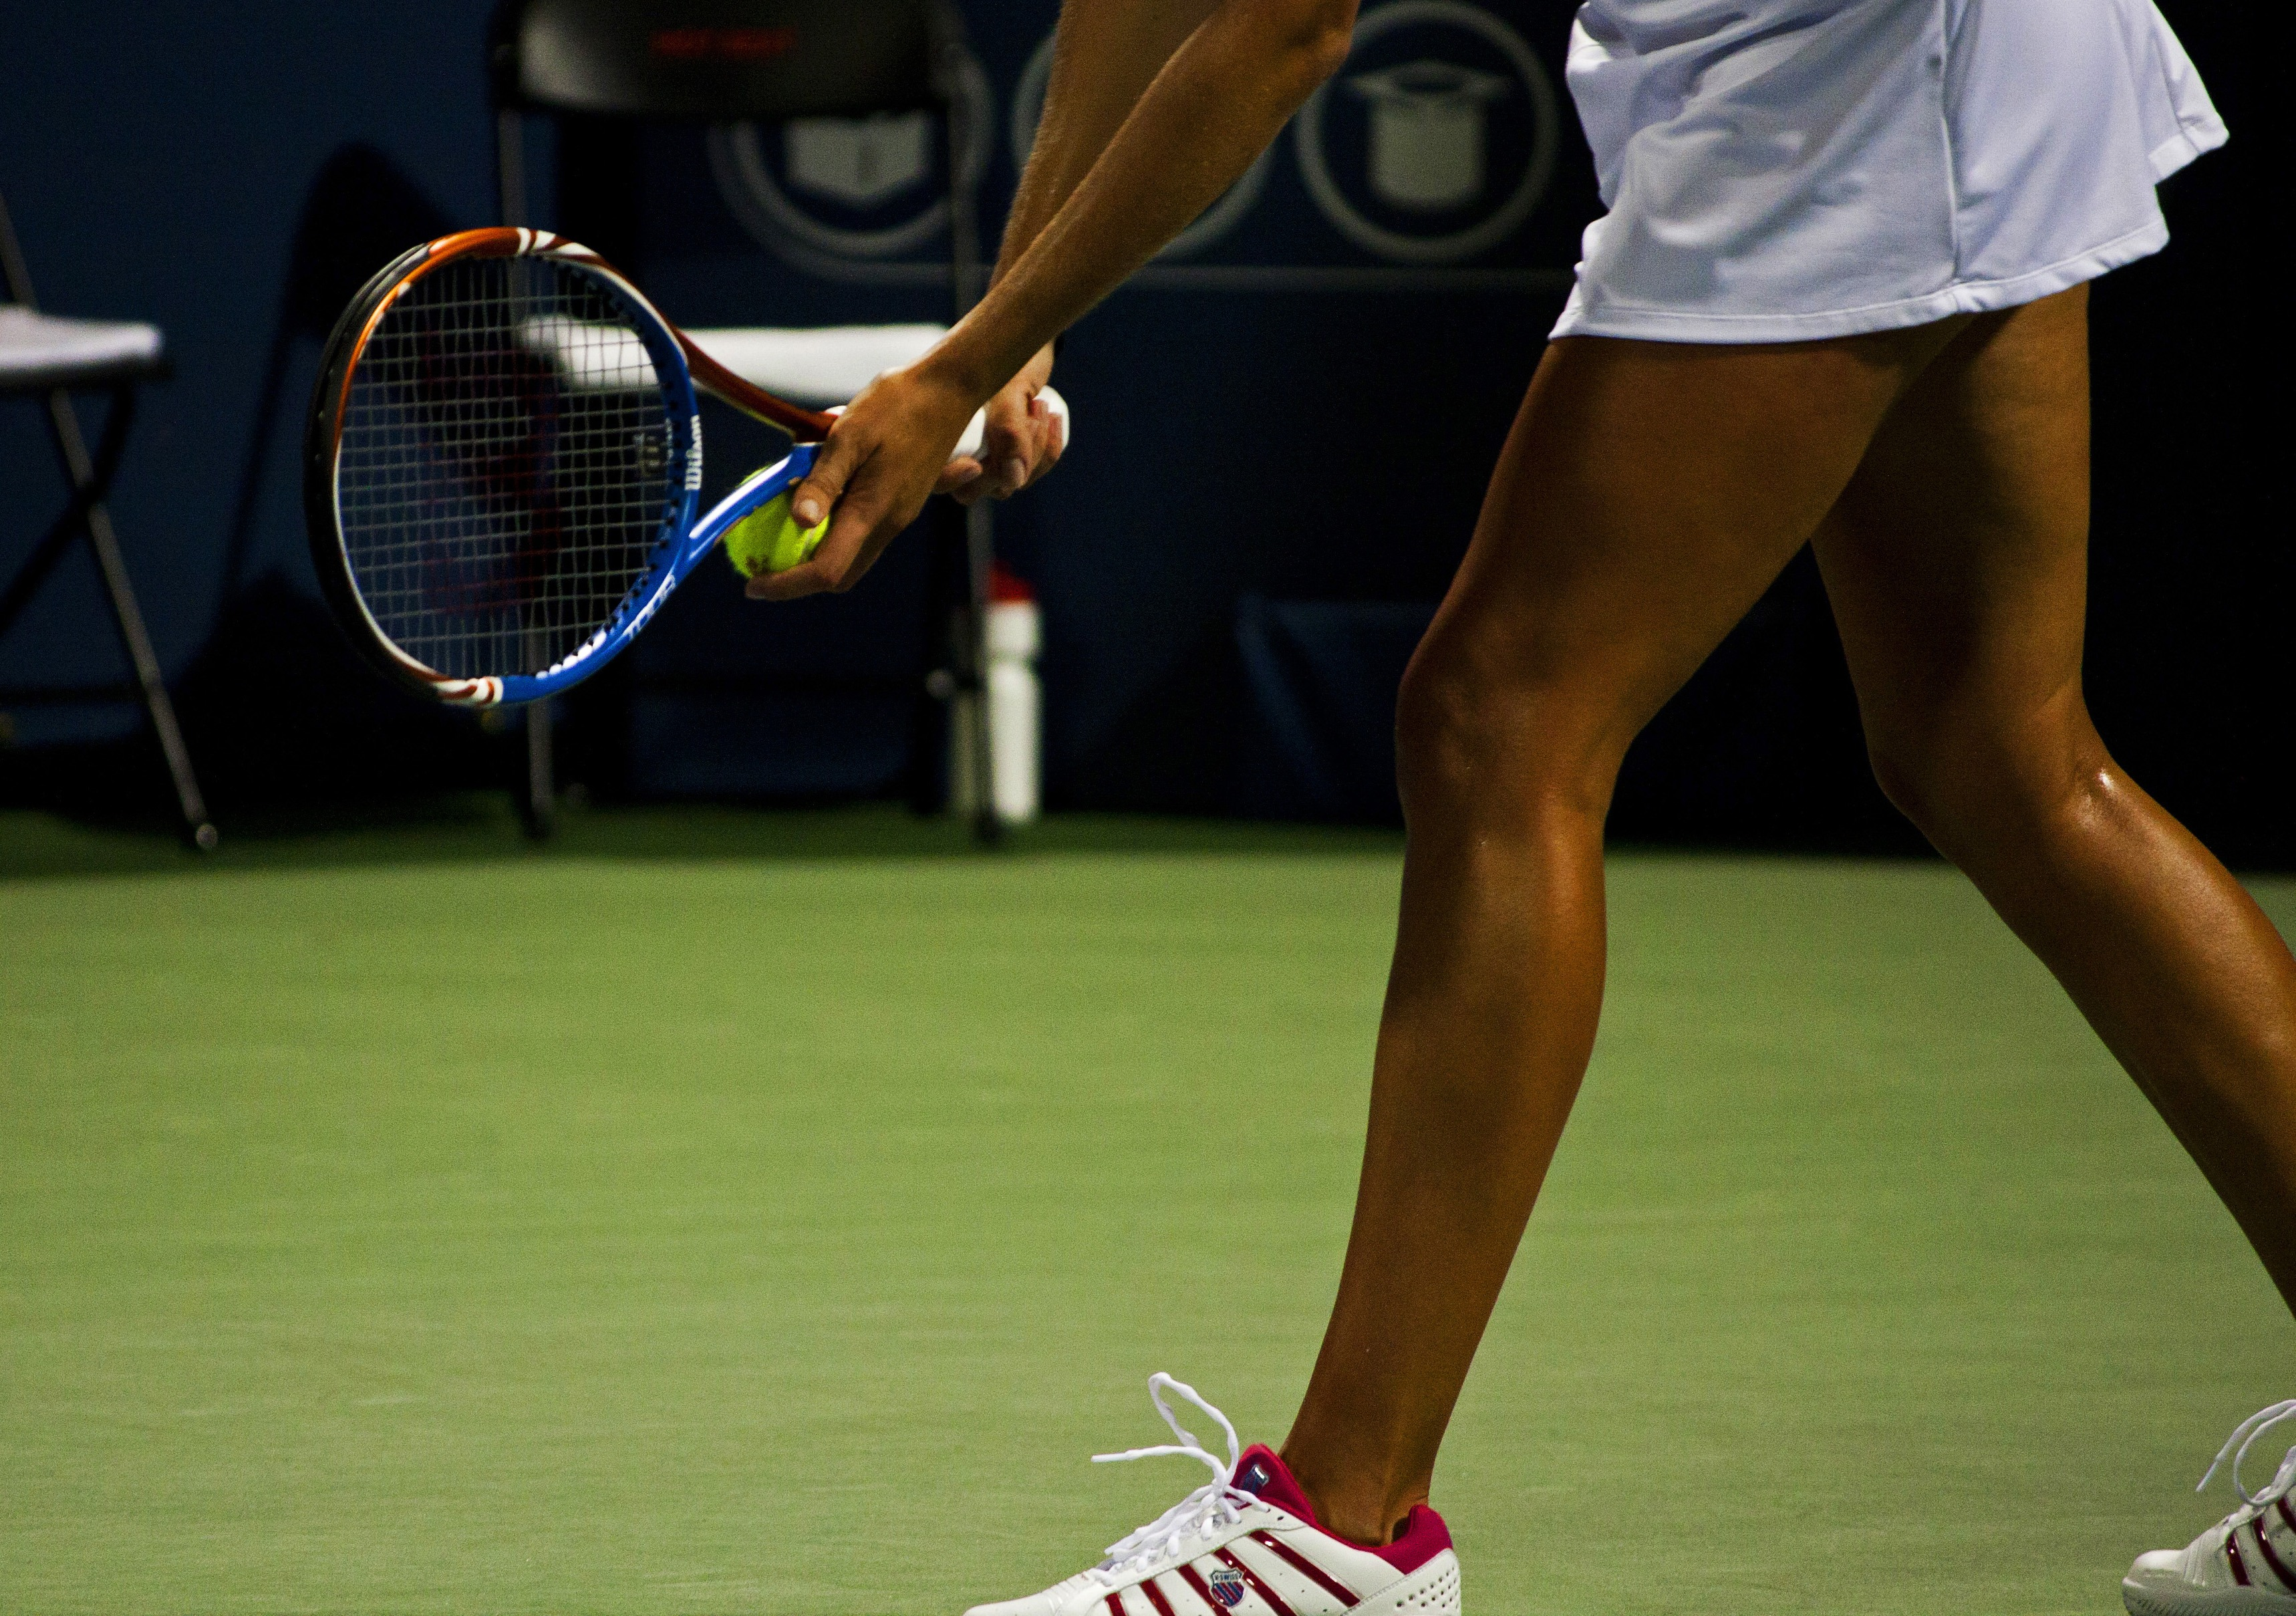 Woman Holding Red and Blue Tennis Racket in Field